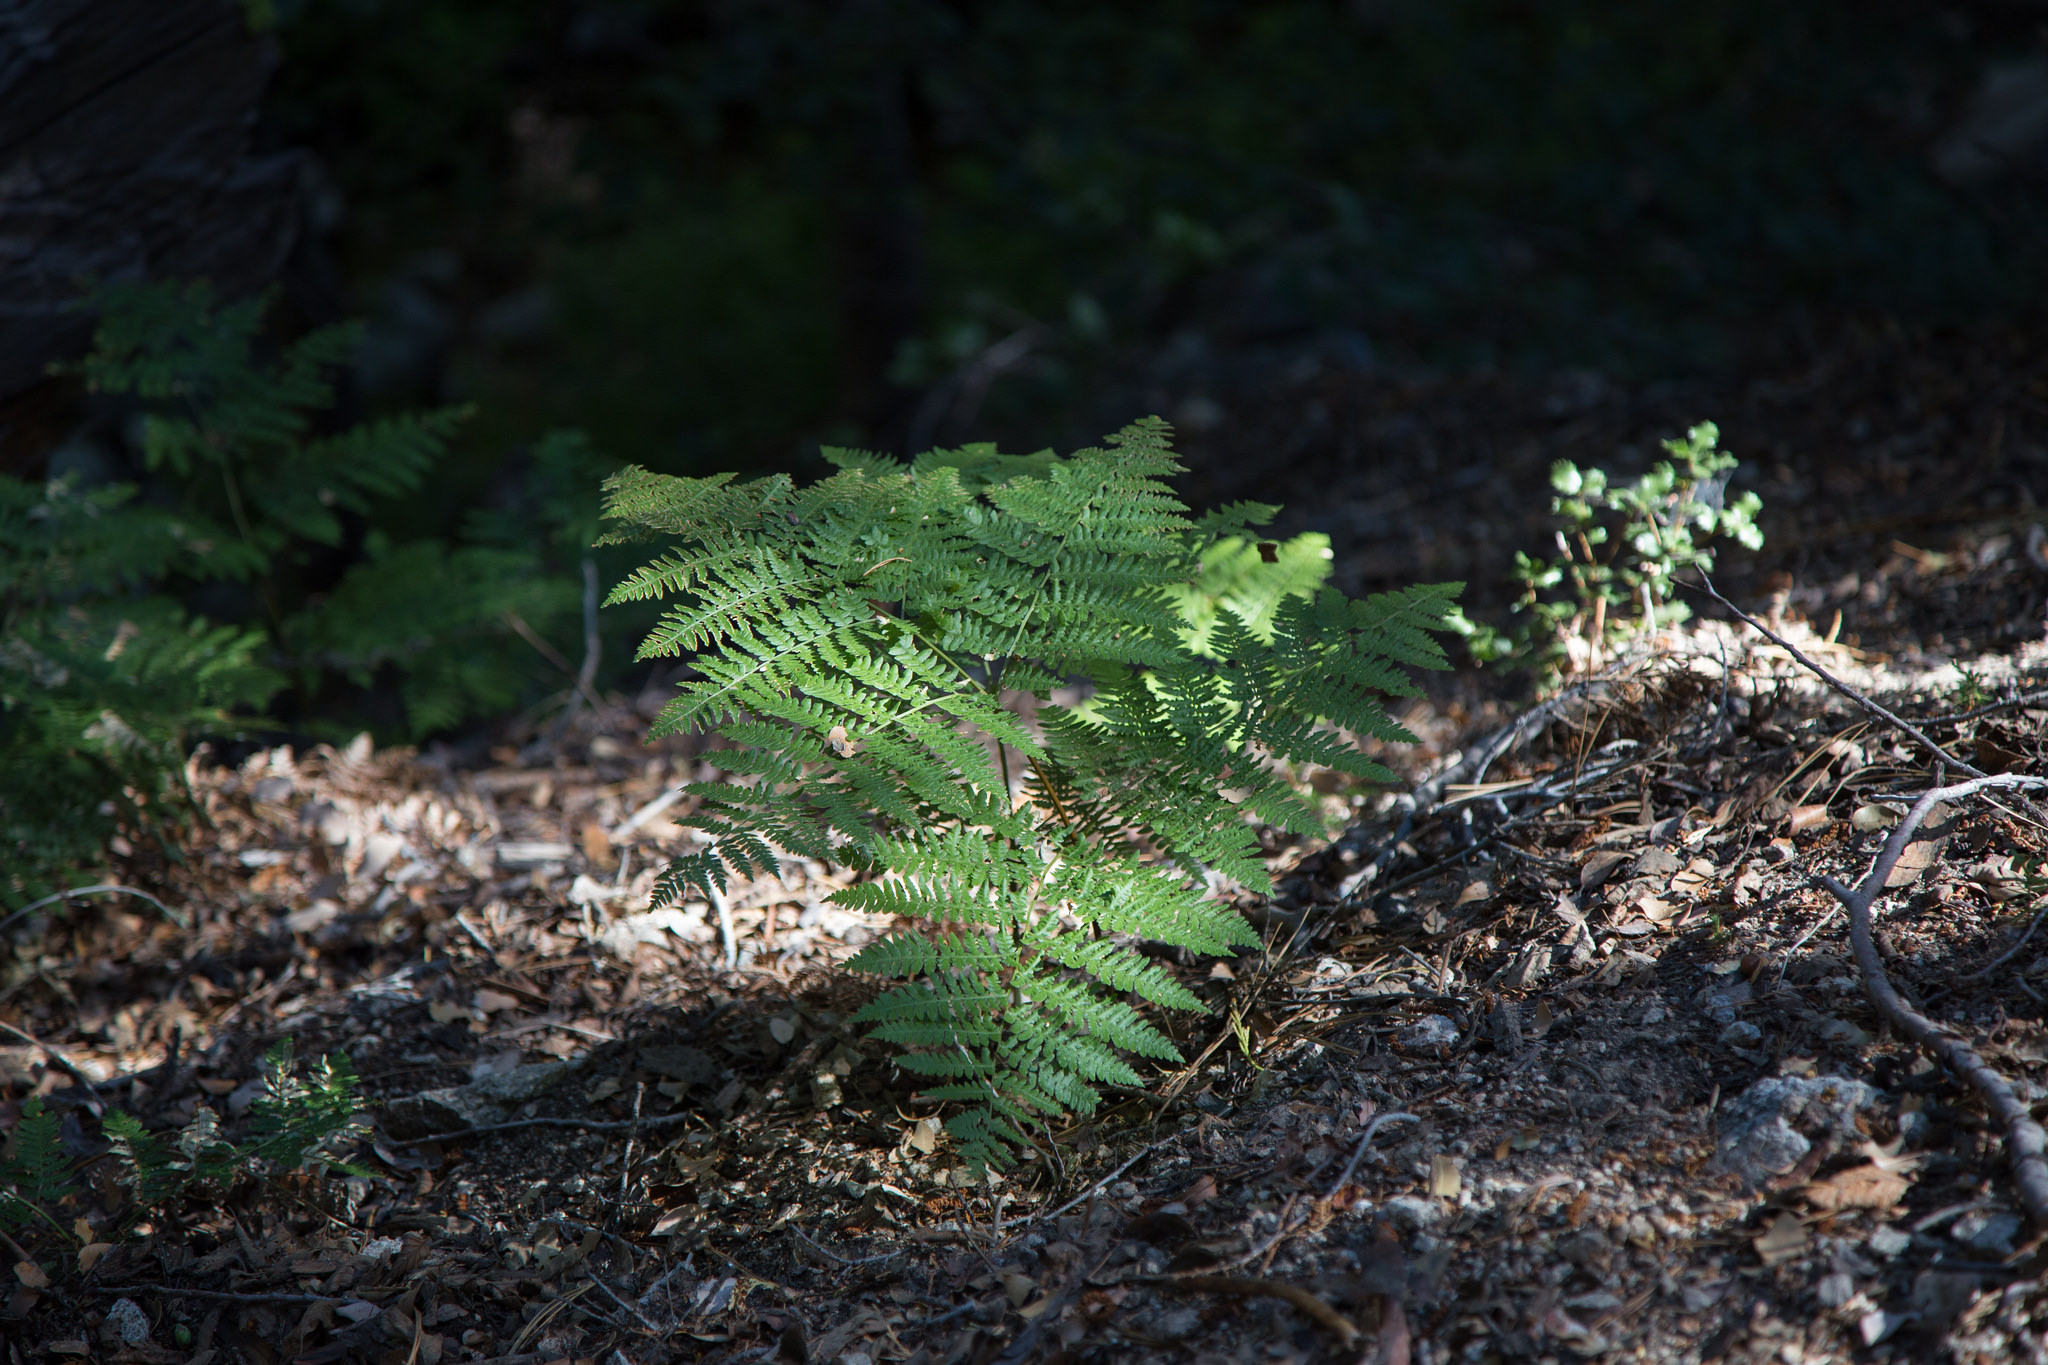 Lots of ferns along the way.